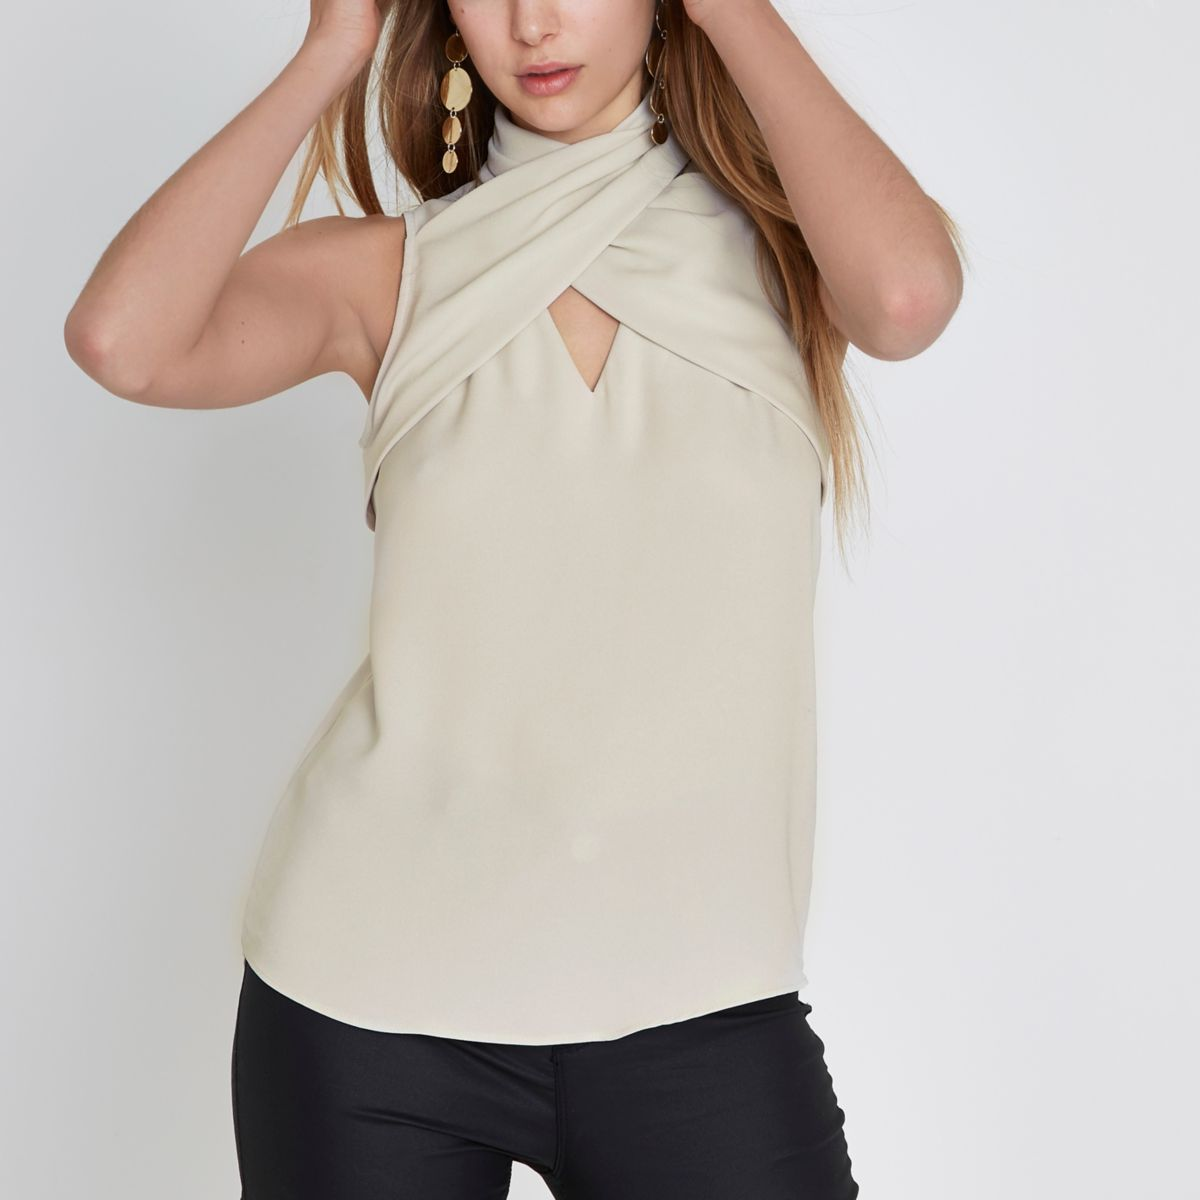 Cream - Discover womens Shirts, Blouses & Jersey at M&S. From fresh cotton classic shirt styles to floral & bold print blouses for work & casual. Order online now.